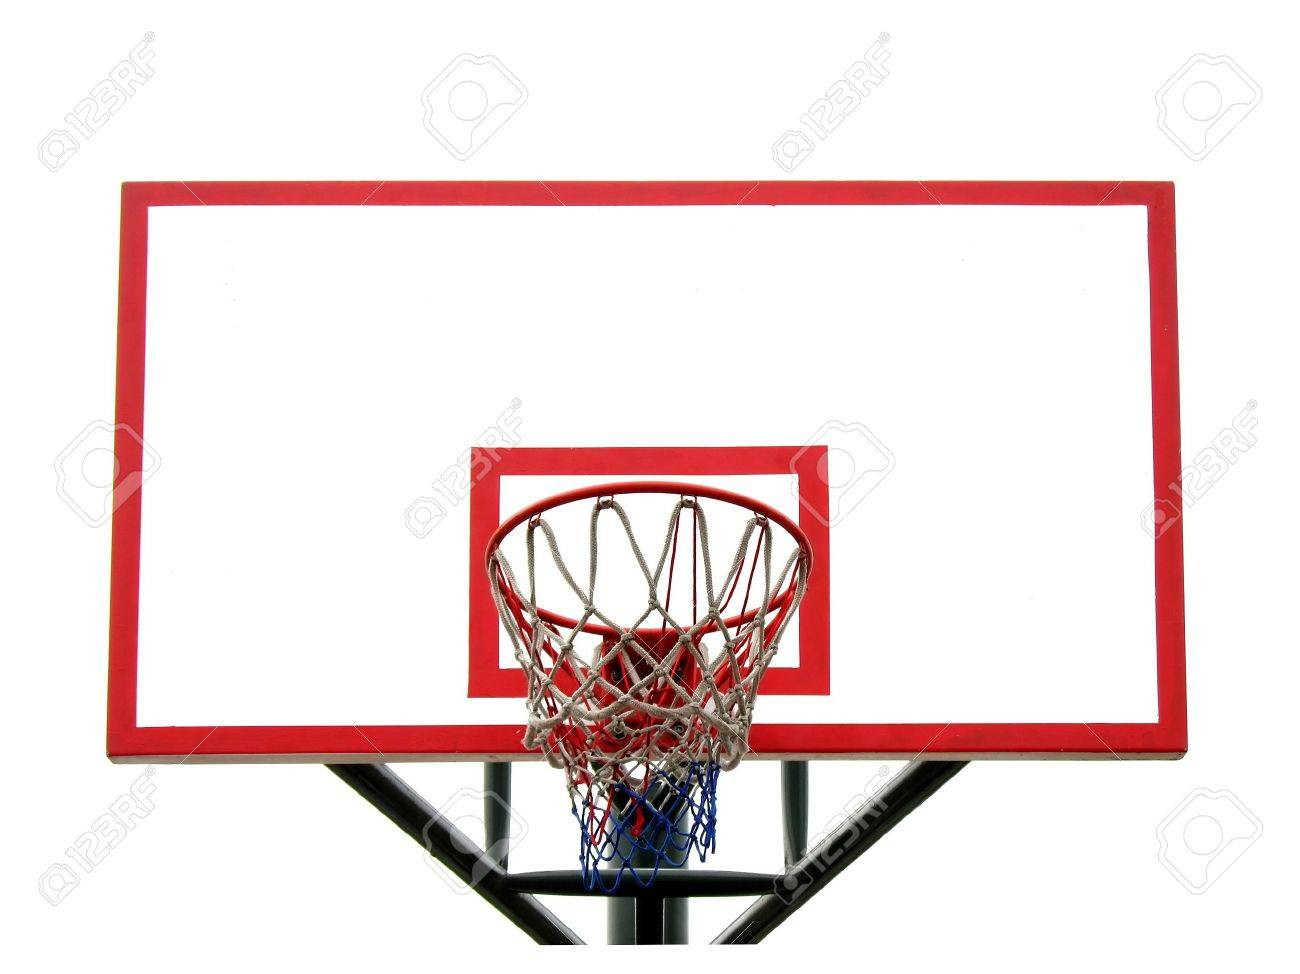 Basketball Hoop And Backboard Isolated Against A White Background ...